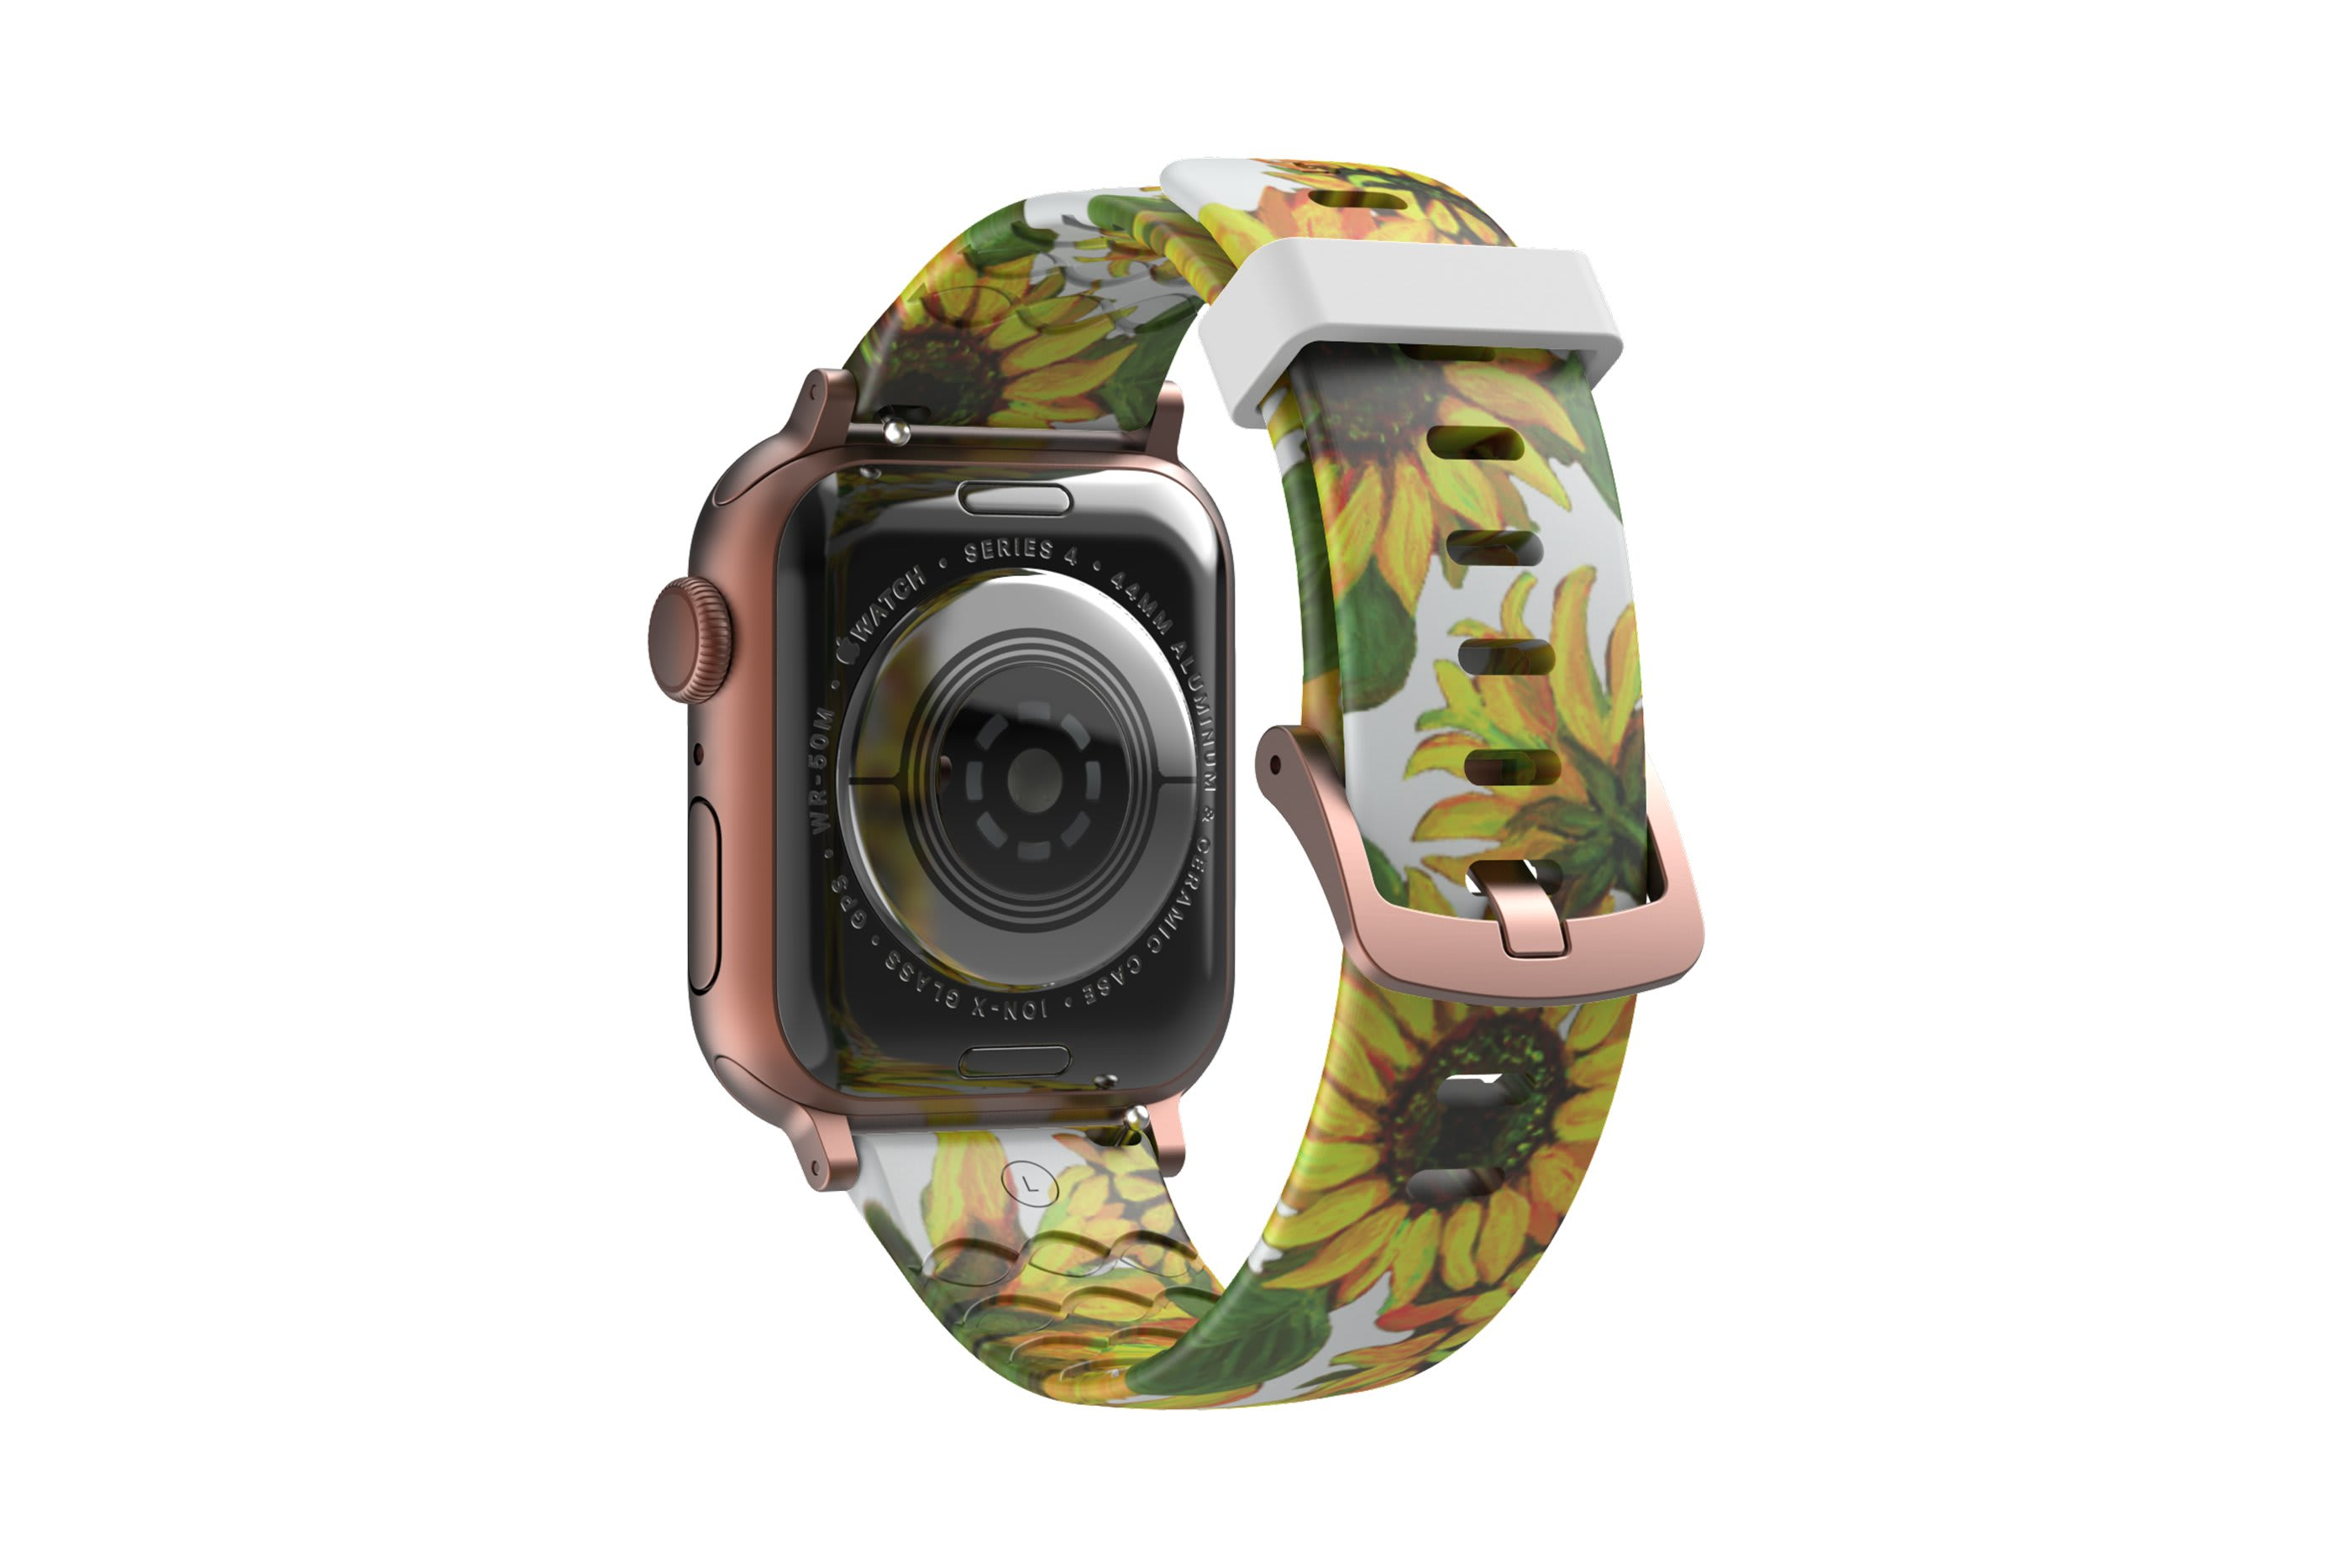 Sunflower Apple Watch Band with rose gold hardware viewed from top down